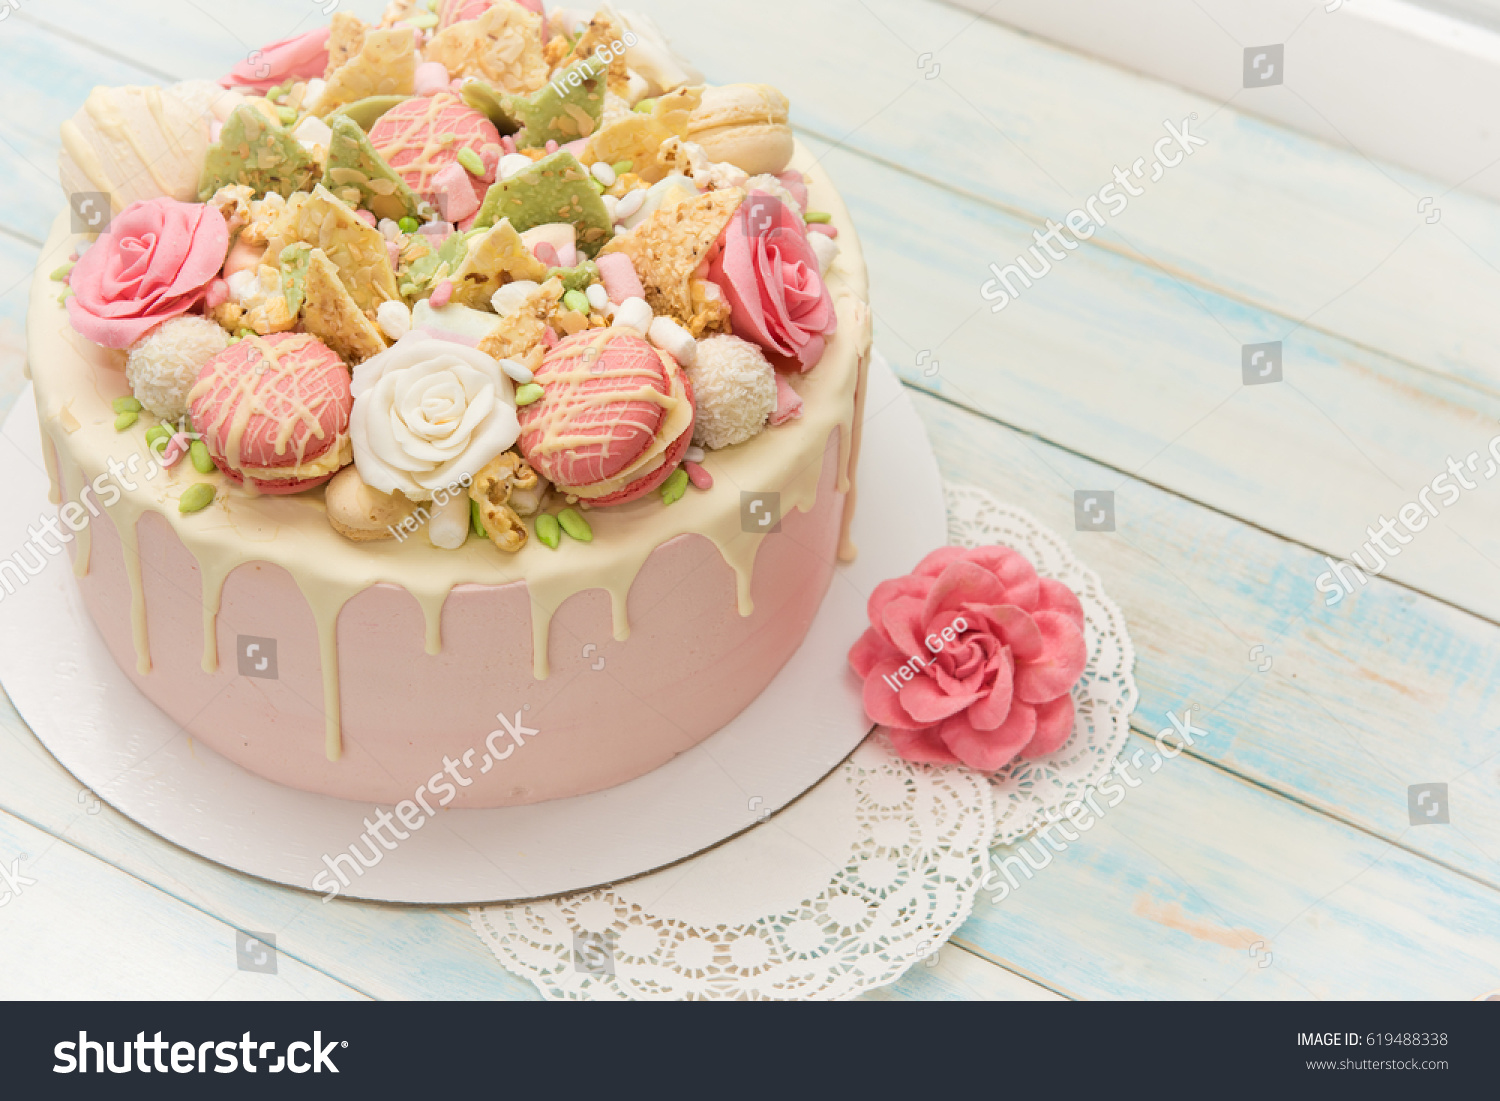 Pink Cake Flowers Cupcakes On White Stock Photo Edit Now 619488338